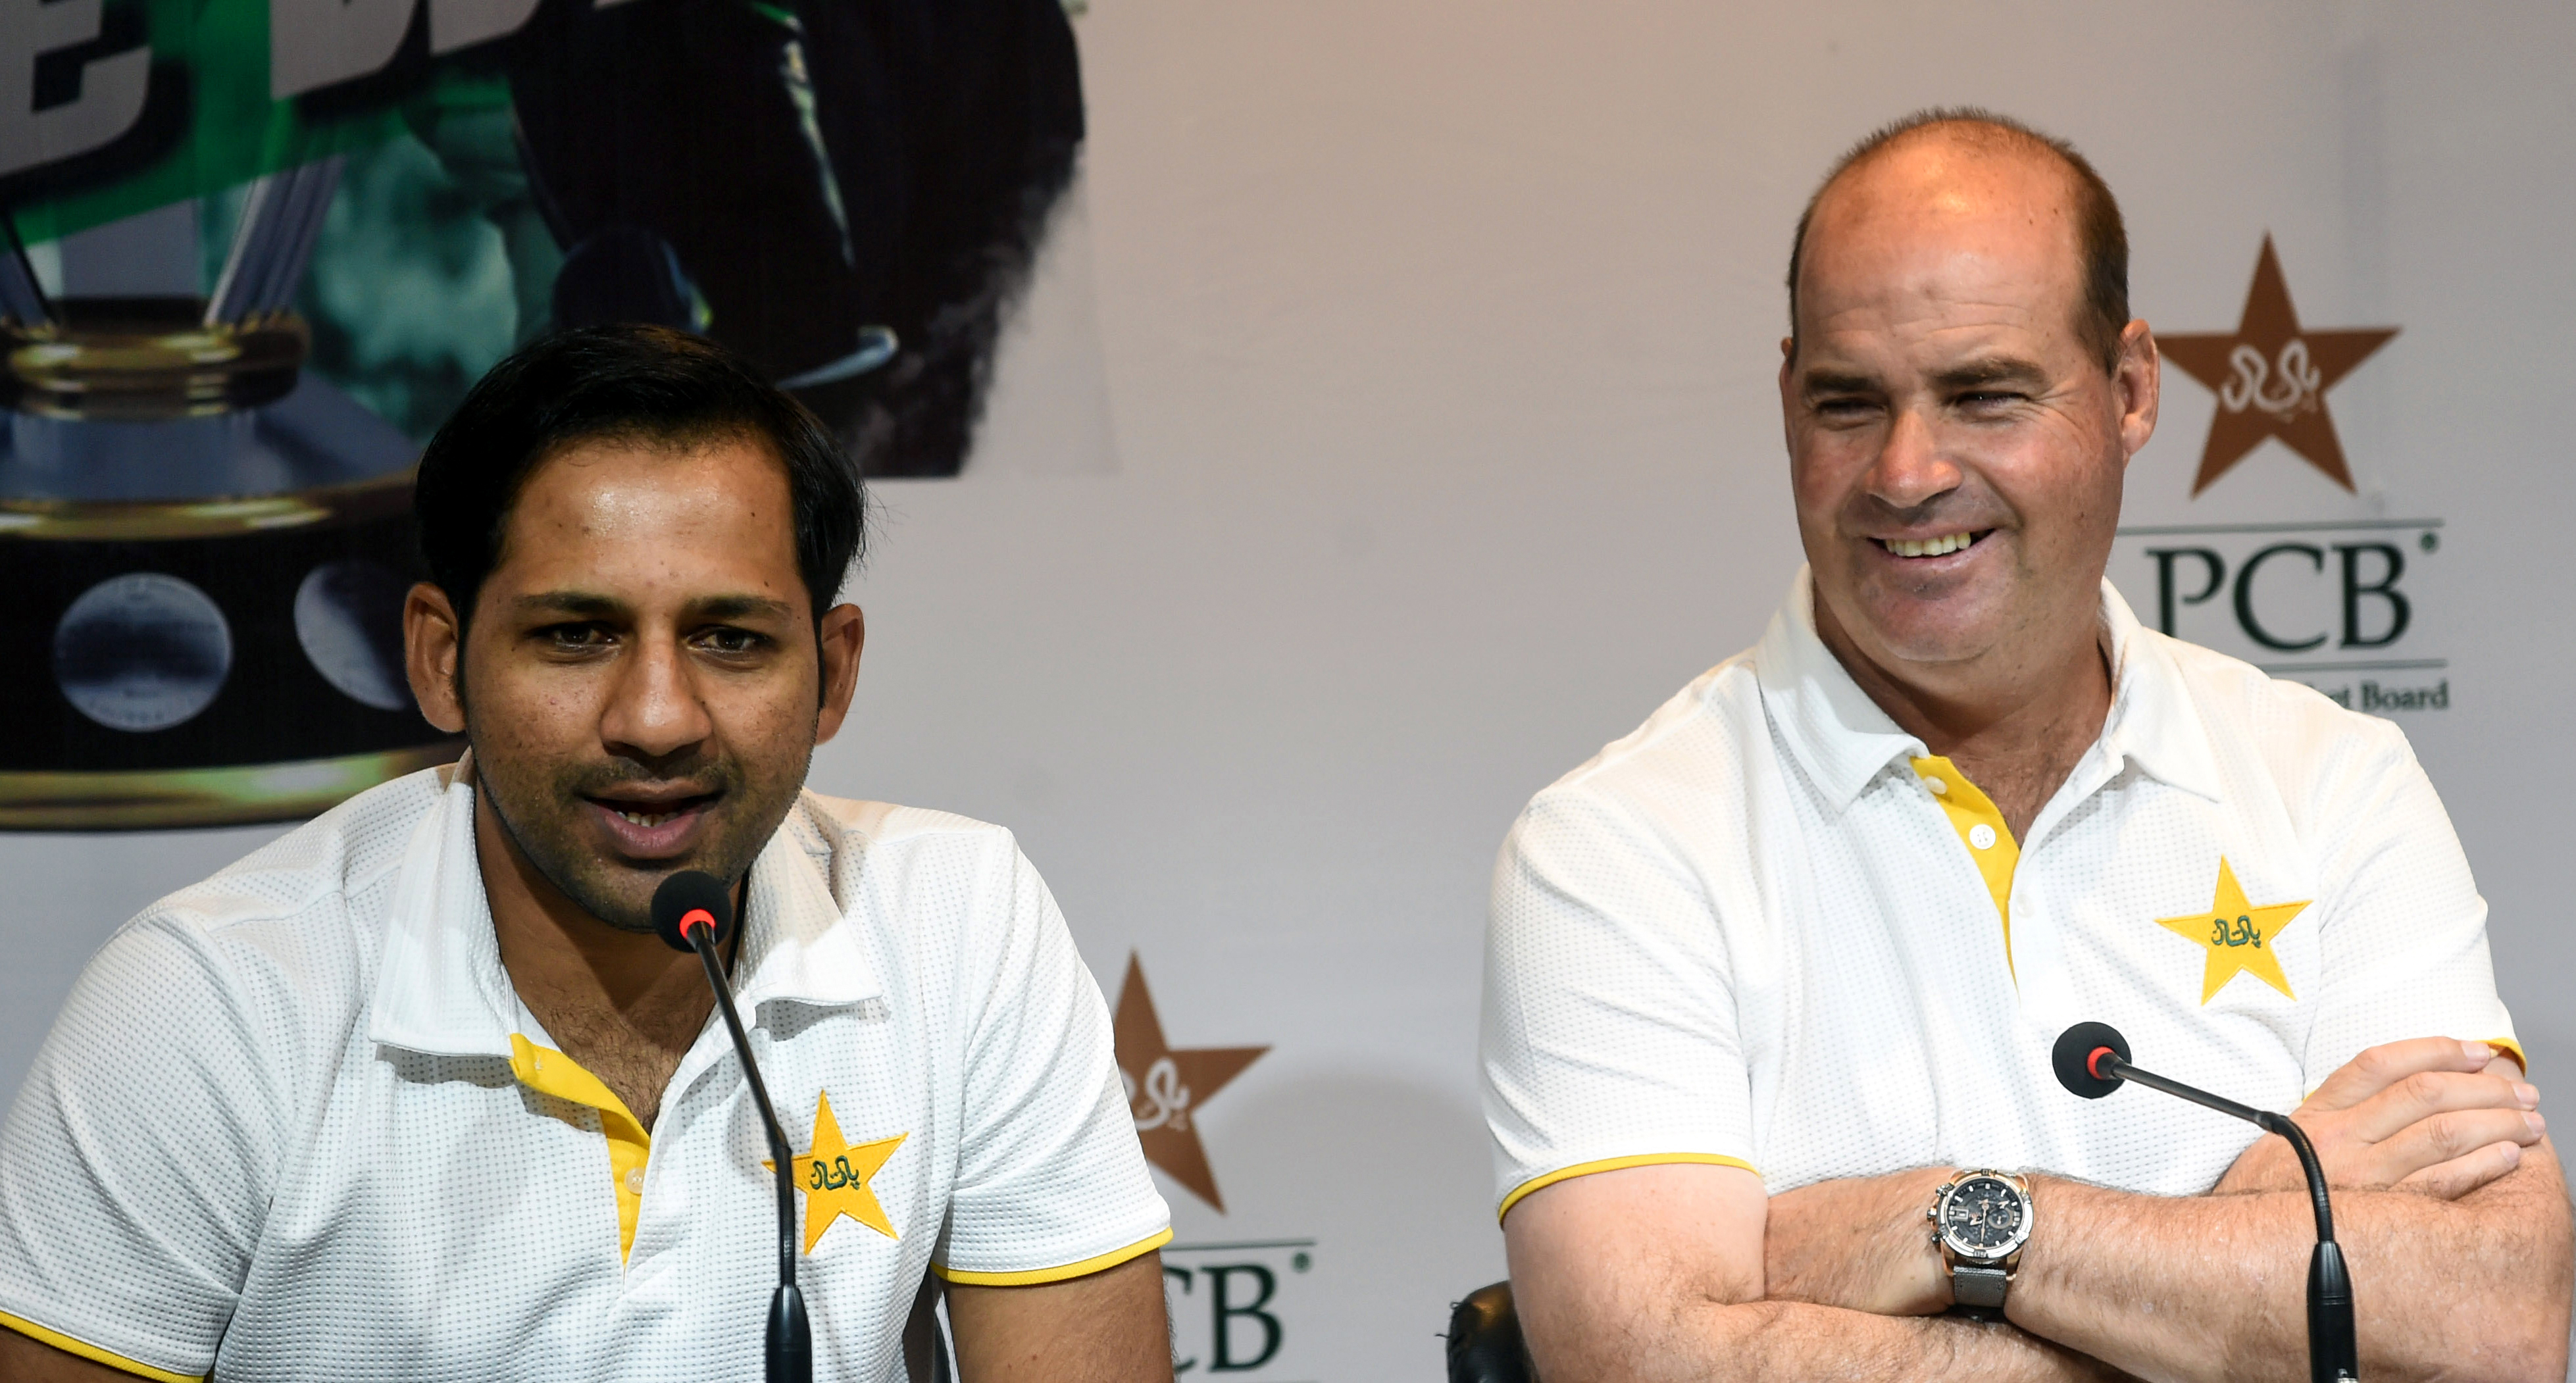 Pakistani cricket captain Sarfraz Ahmed (L) speaks to media next to South African coach Mickey Arthur during a press conference in Lahore (RIF ALI/AFP/Getty Images)